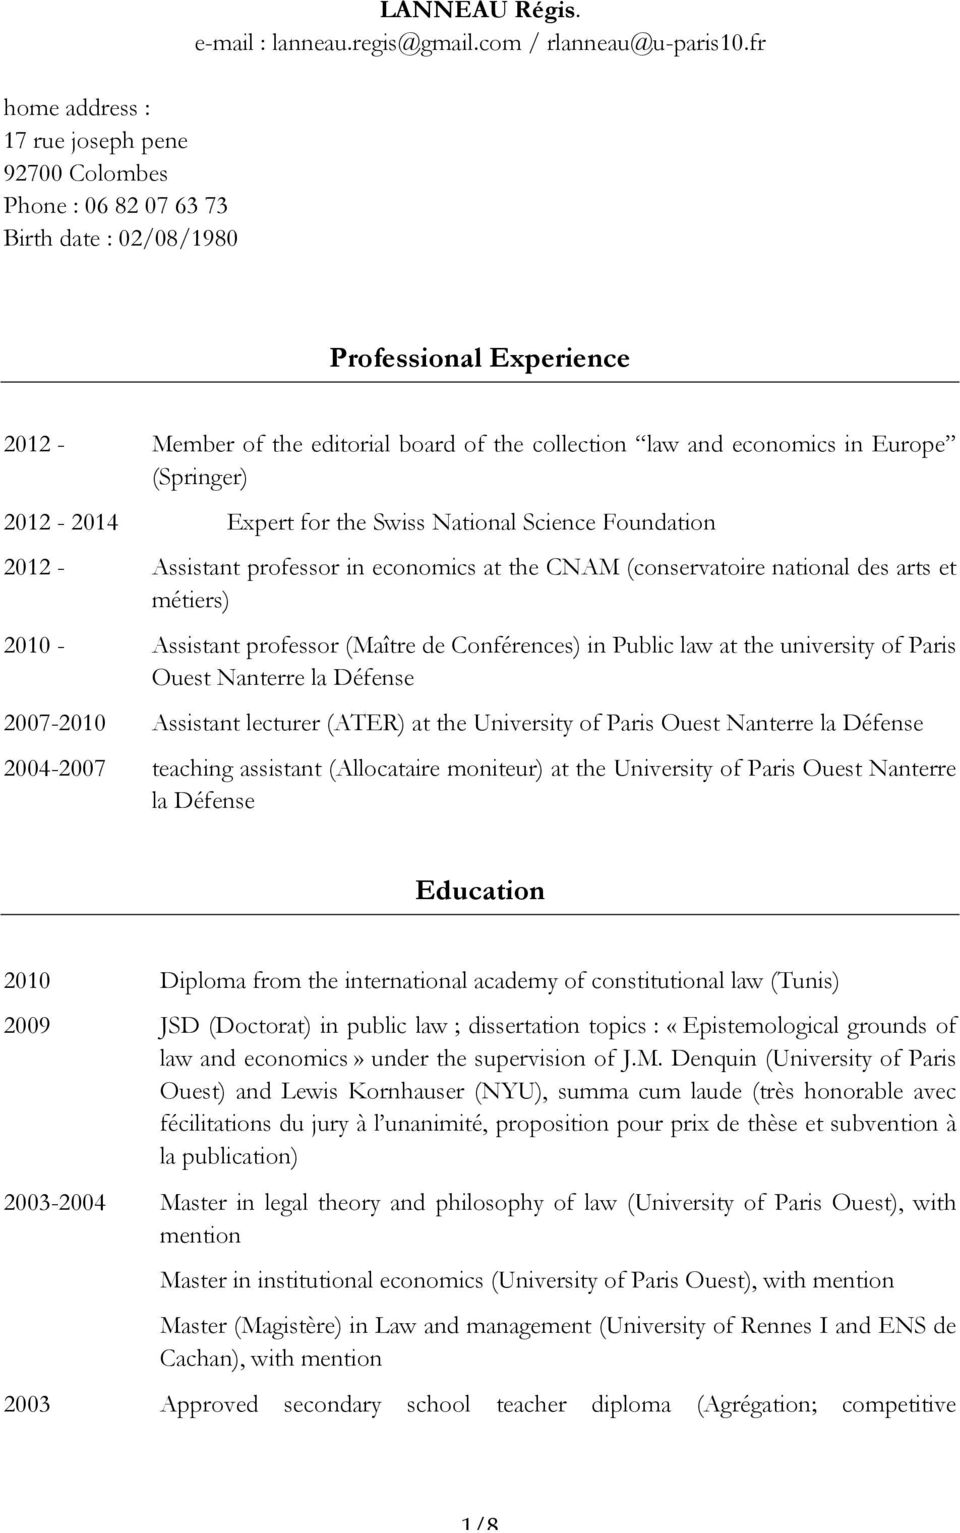 professor in economics at the CNAM (conservatoire national des arts et métiers) 2010 - Assistant professor (Maître de Conférences) in Public law at the university of Paris Ouest Nanterre la Défense